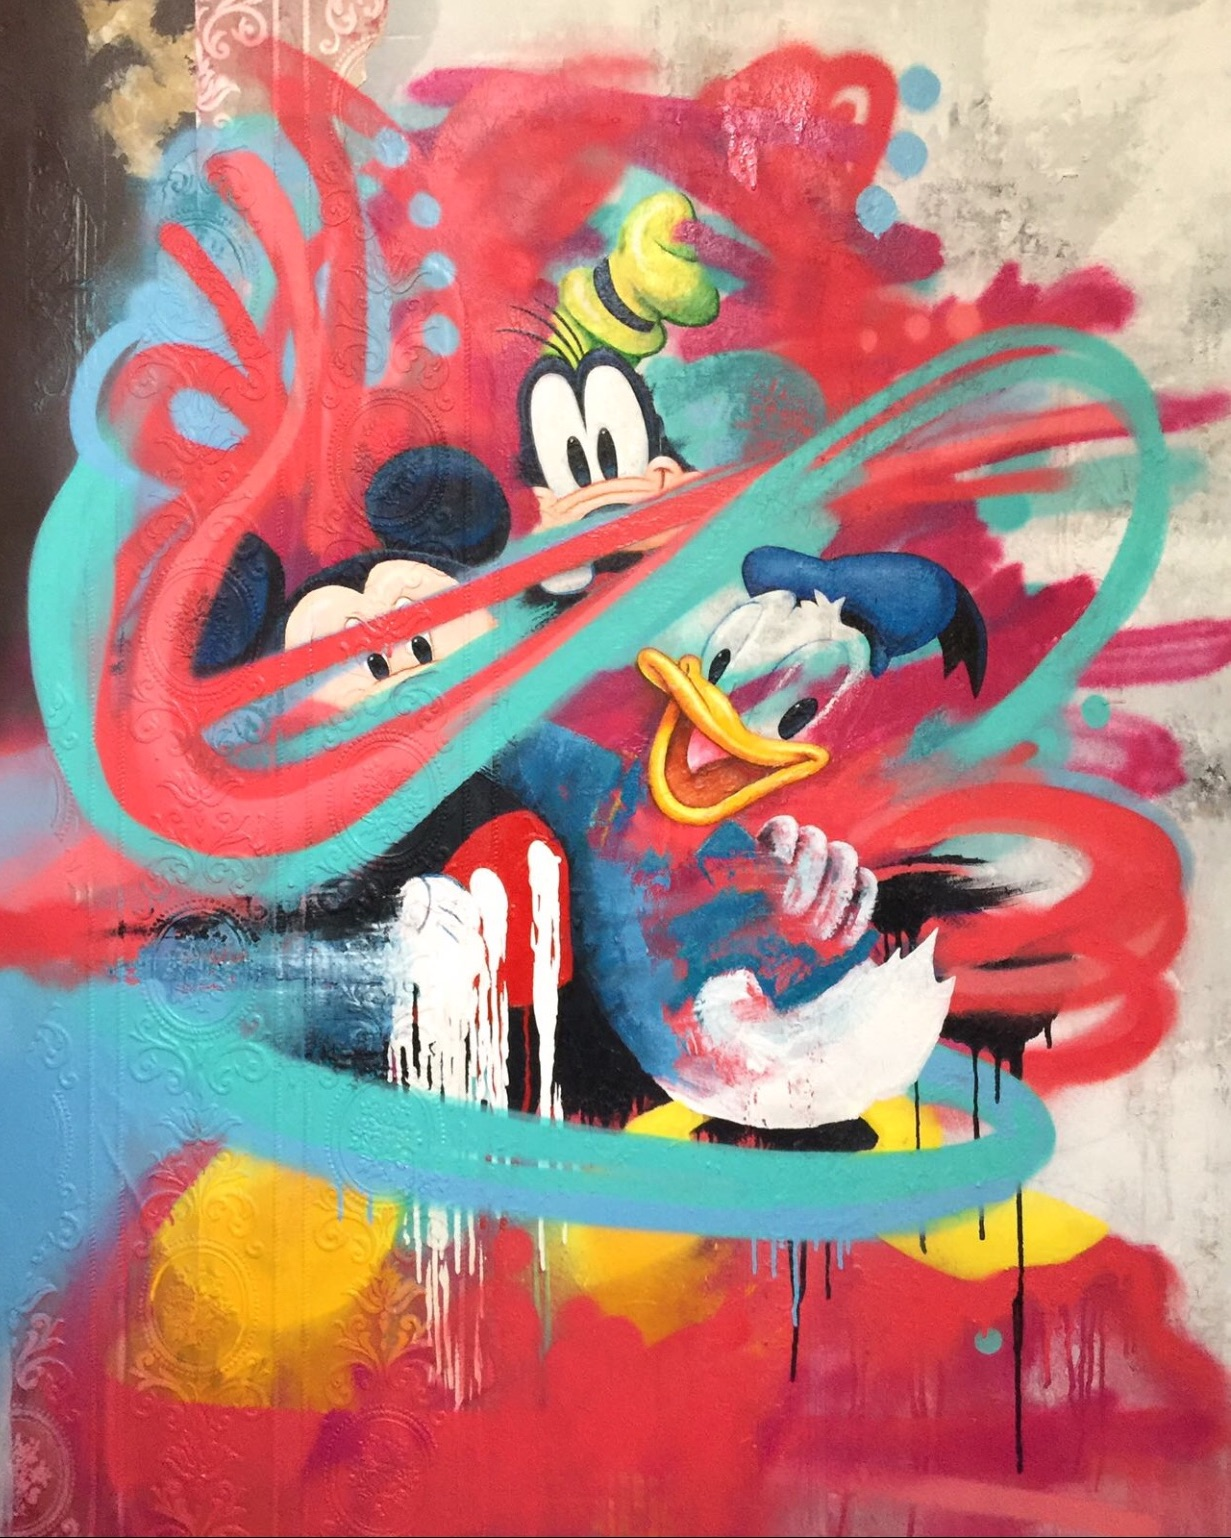 Vague Memories artwork by Robyn Ward - art listed for sale on Artplode